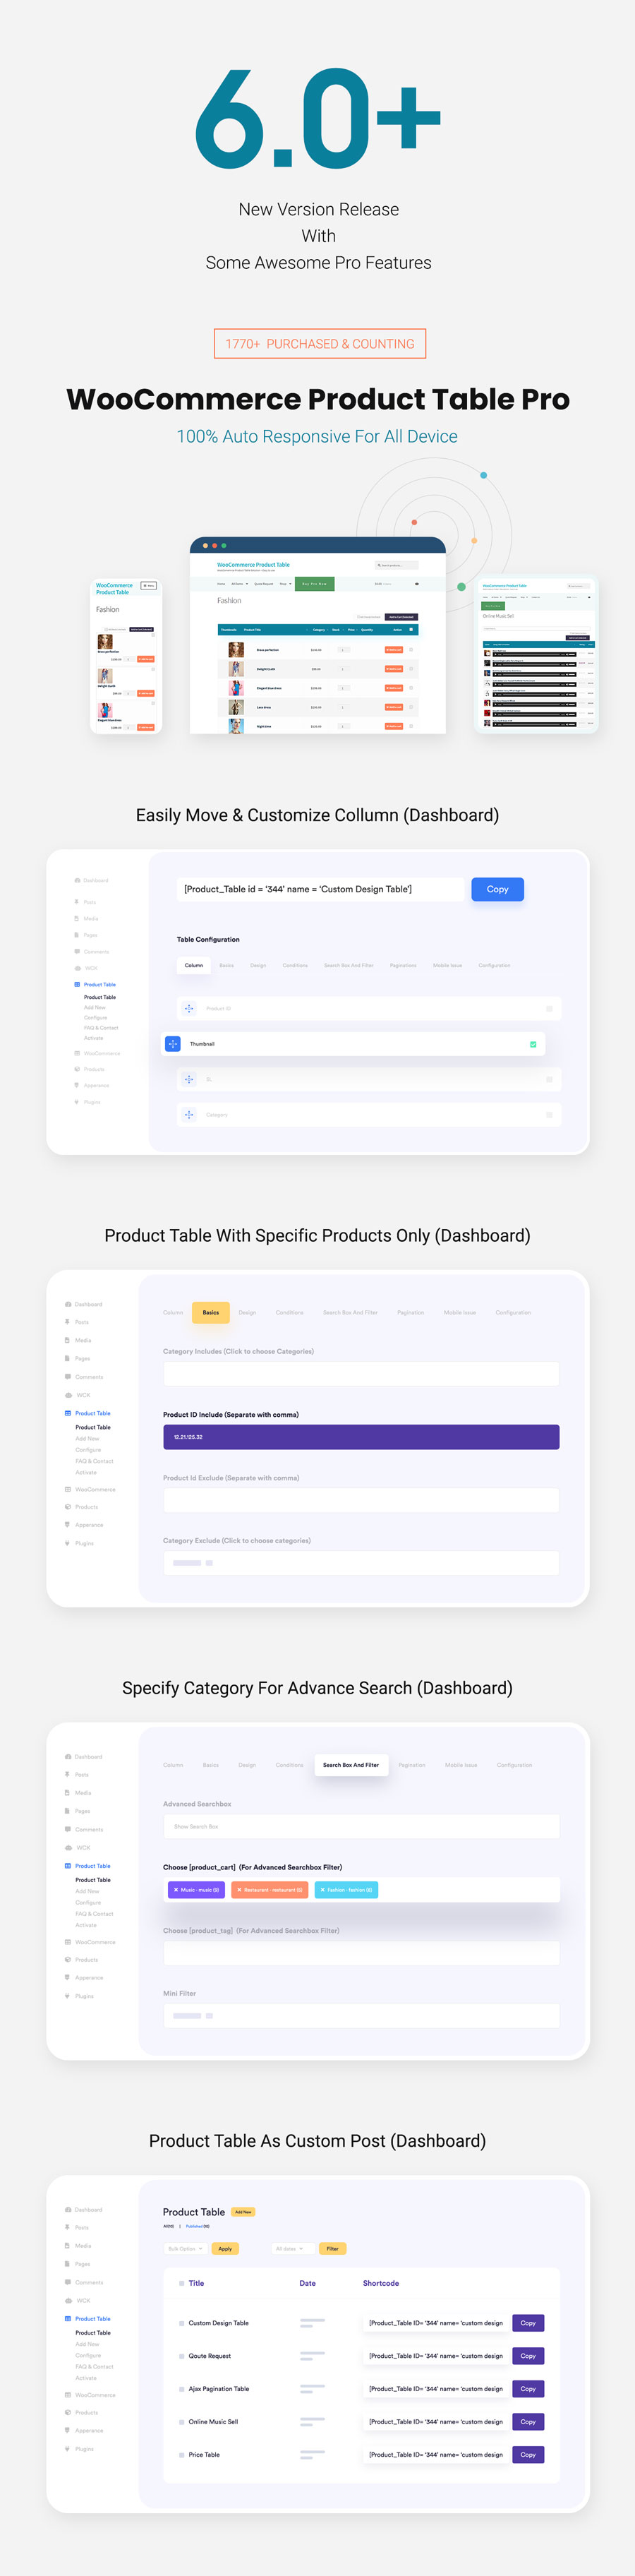 Woo Product Table Pro - WooCommerce Product Table view solution - 7